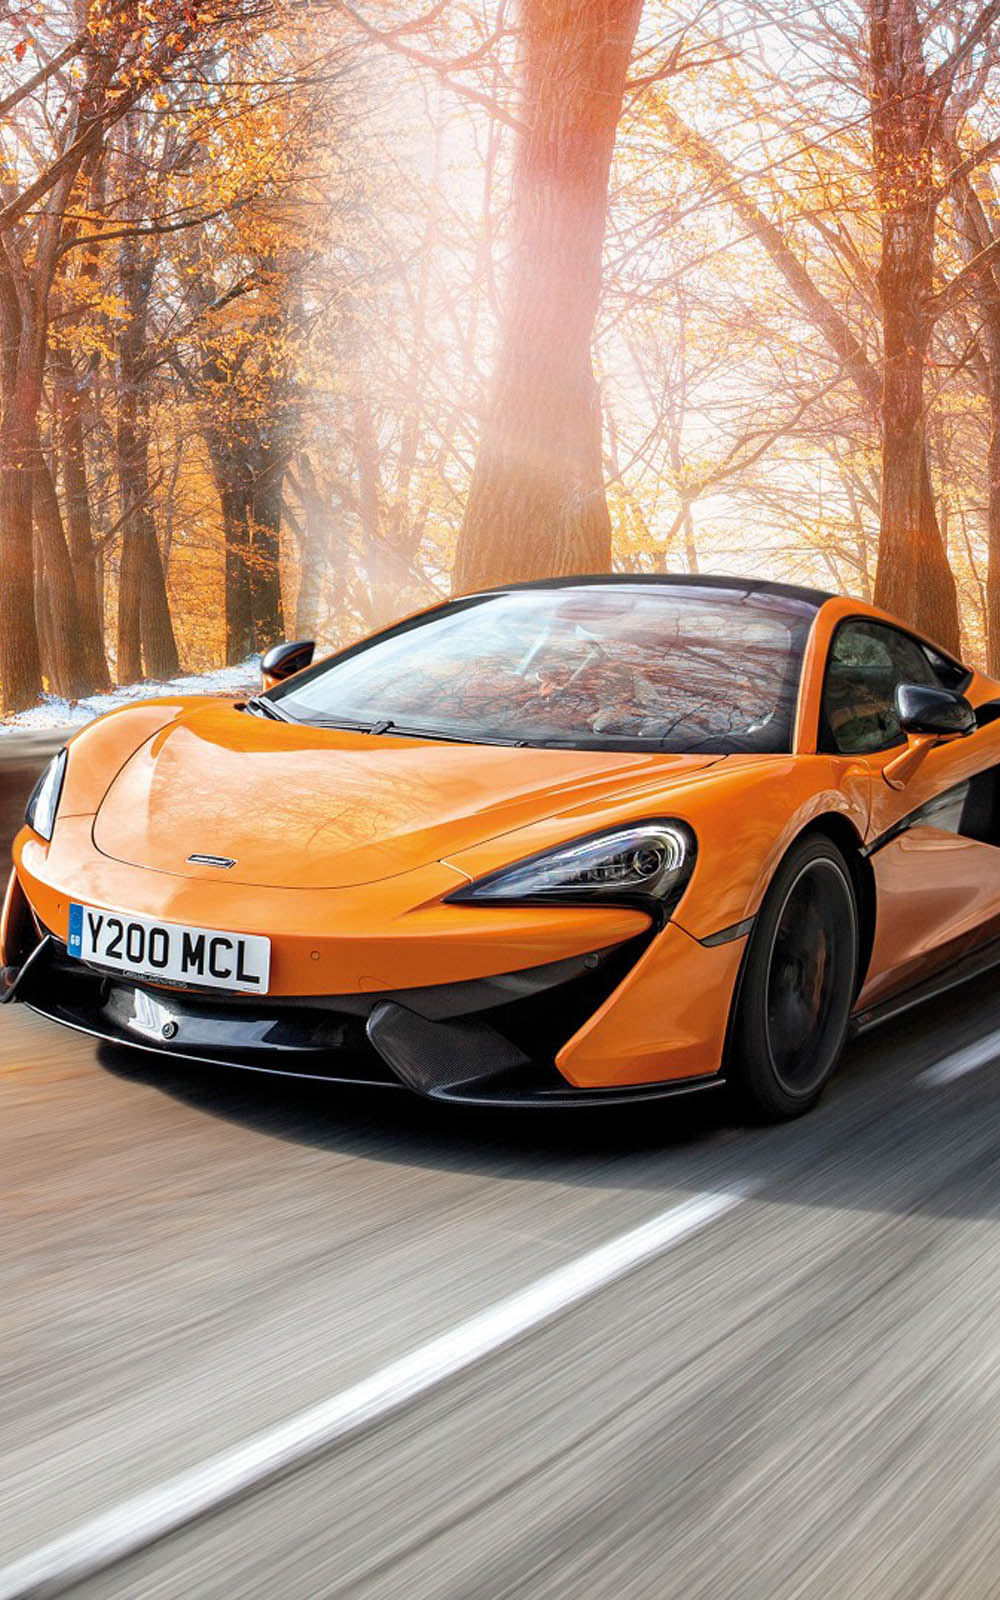 Whatsapp Car Wallpaper Download Download Mclaren 570s Pirelli Mc Sottozero 3 Free Pure 4k